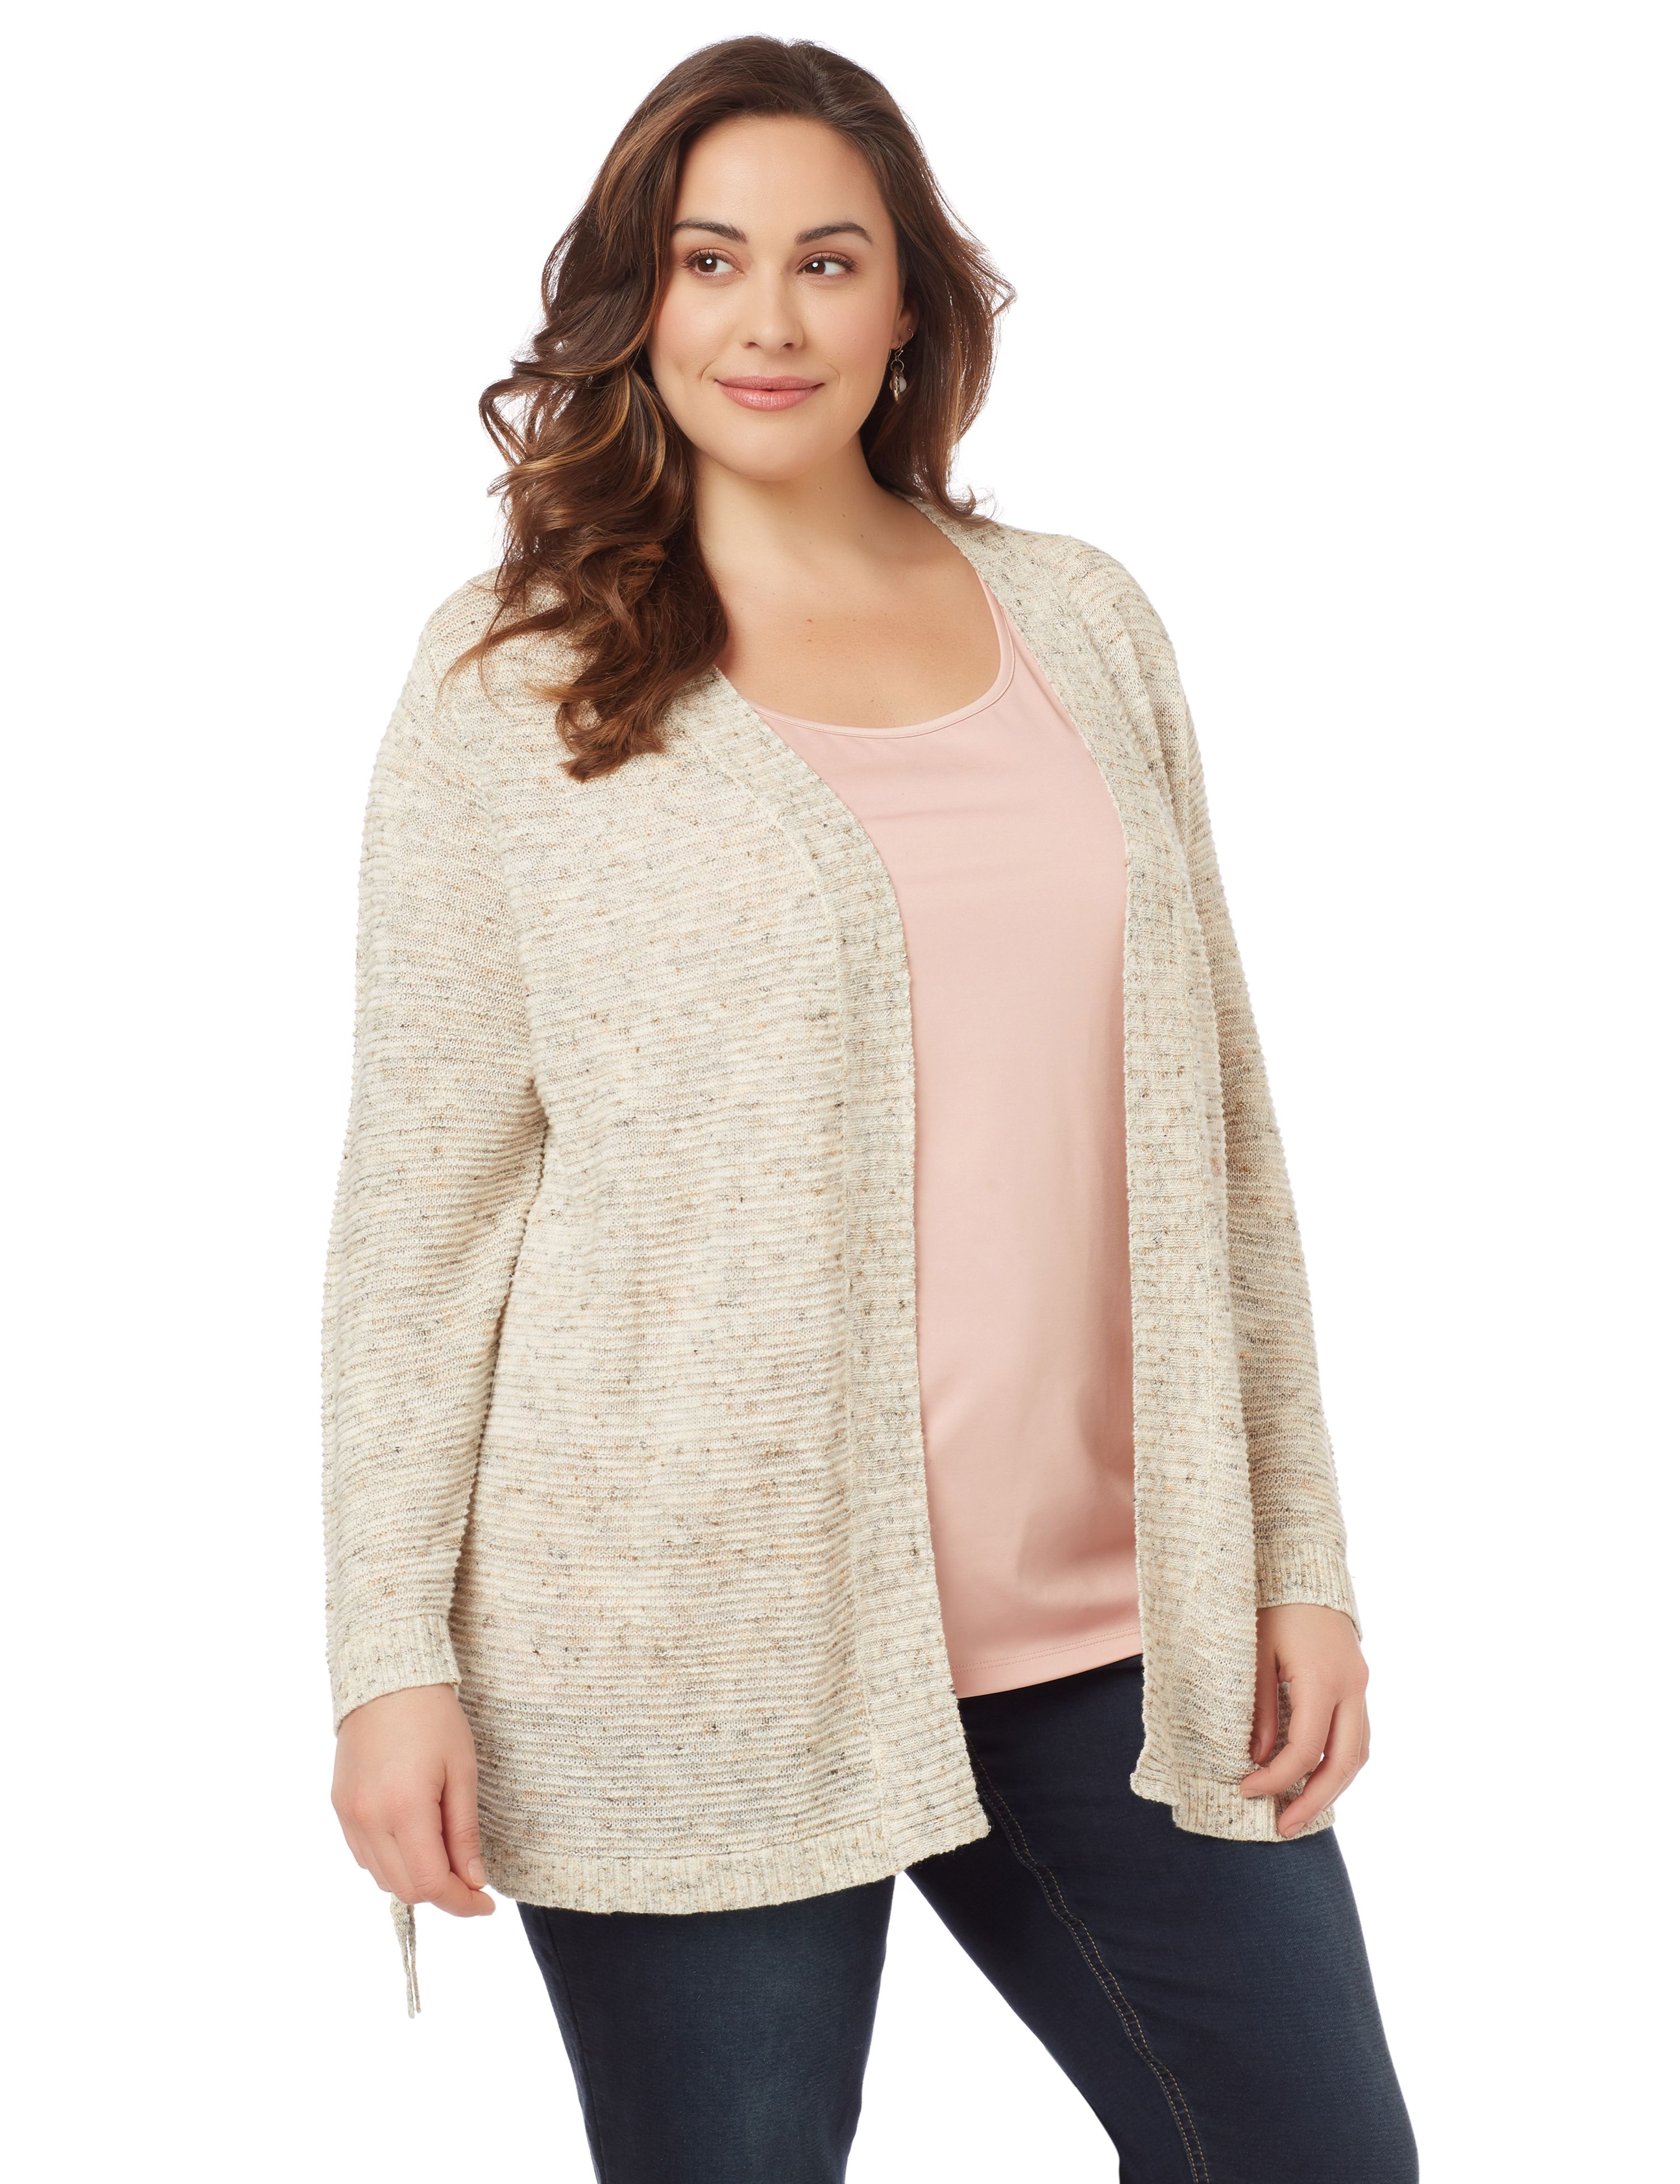 Snowflake Cardigan 1092757 PointelleBackCardigan MP-300101207